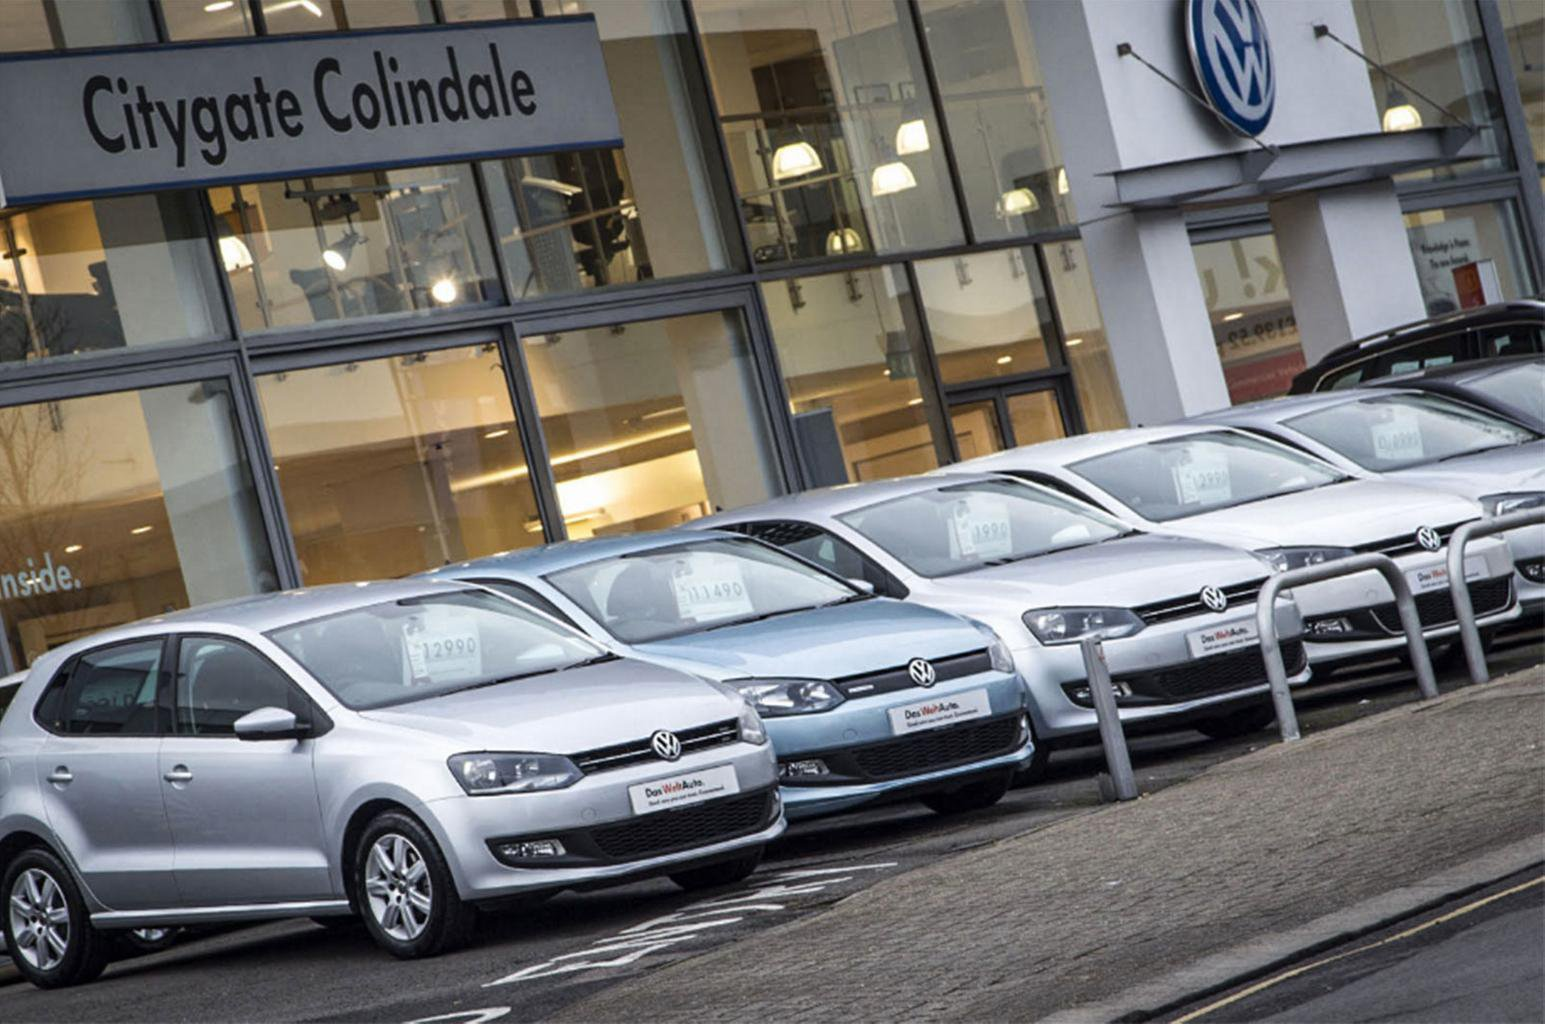 New car prices set to rise in 2017, warns industry body